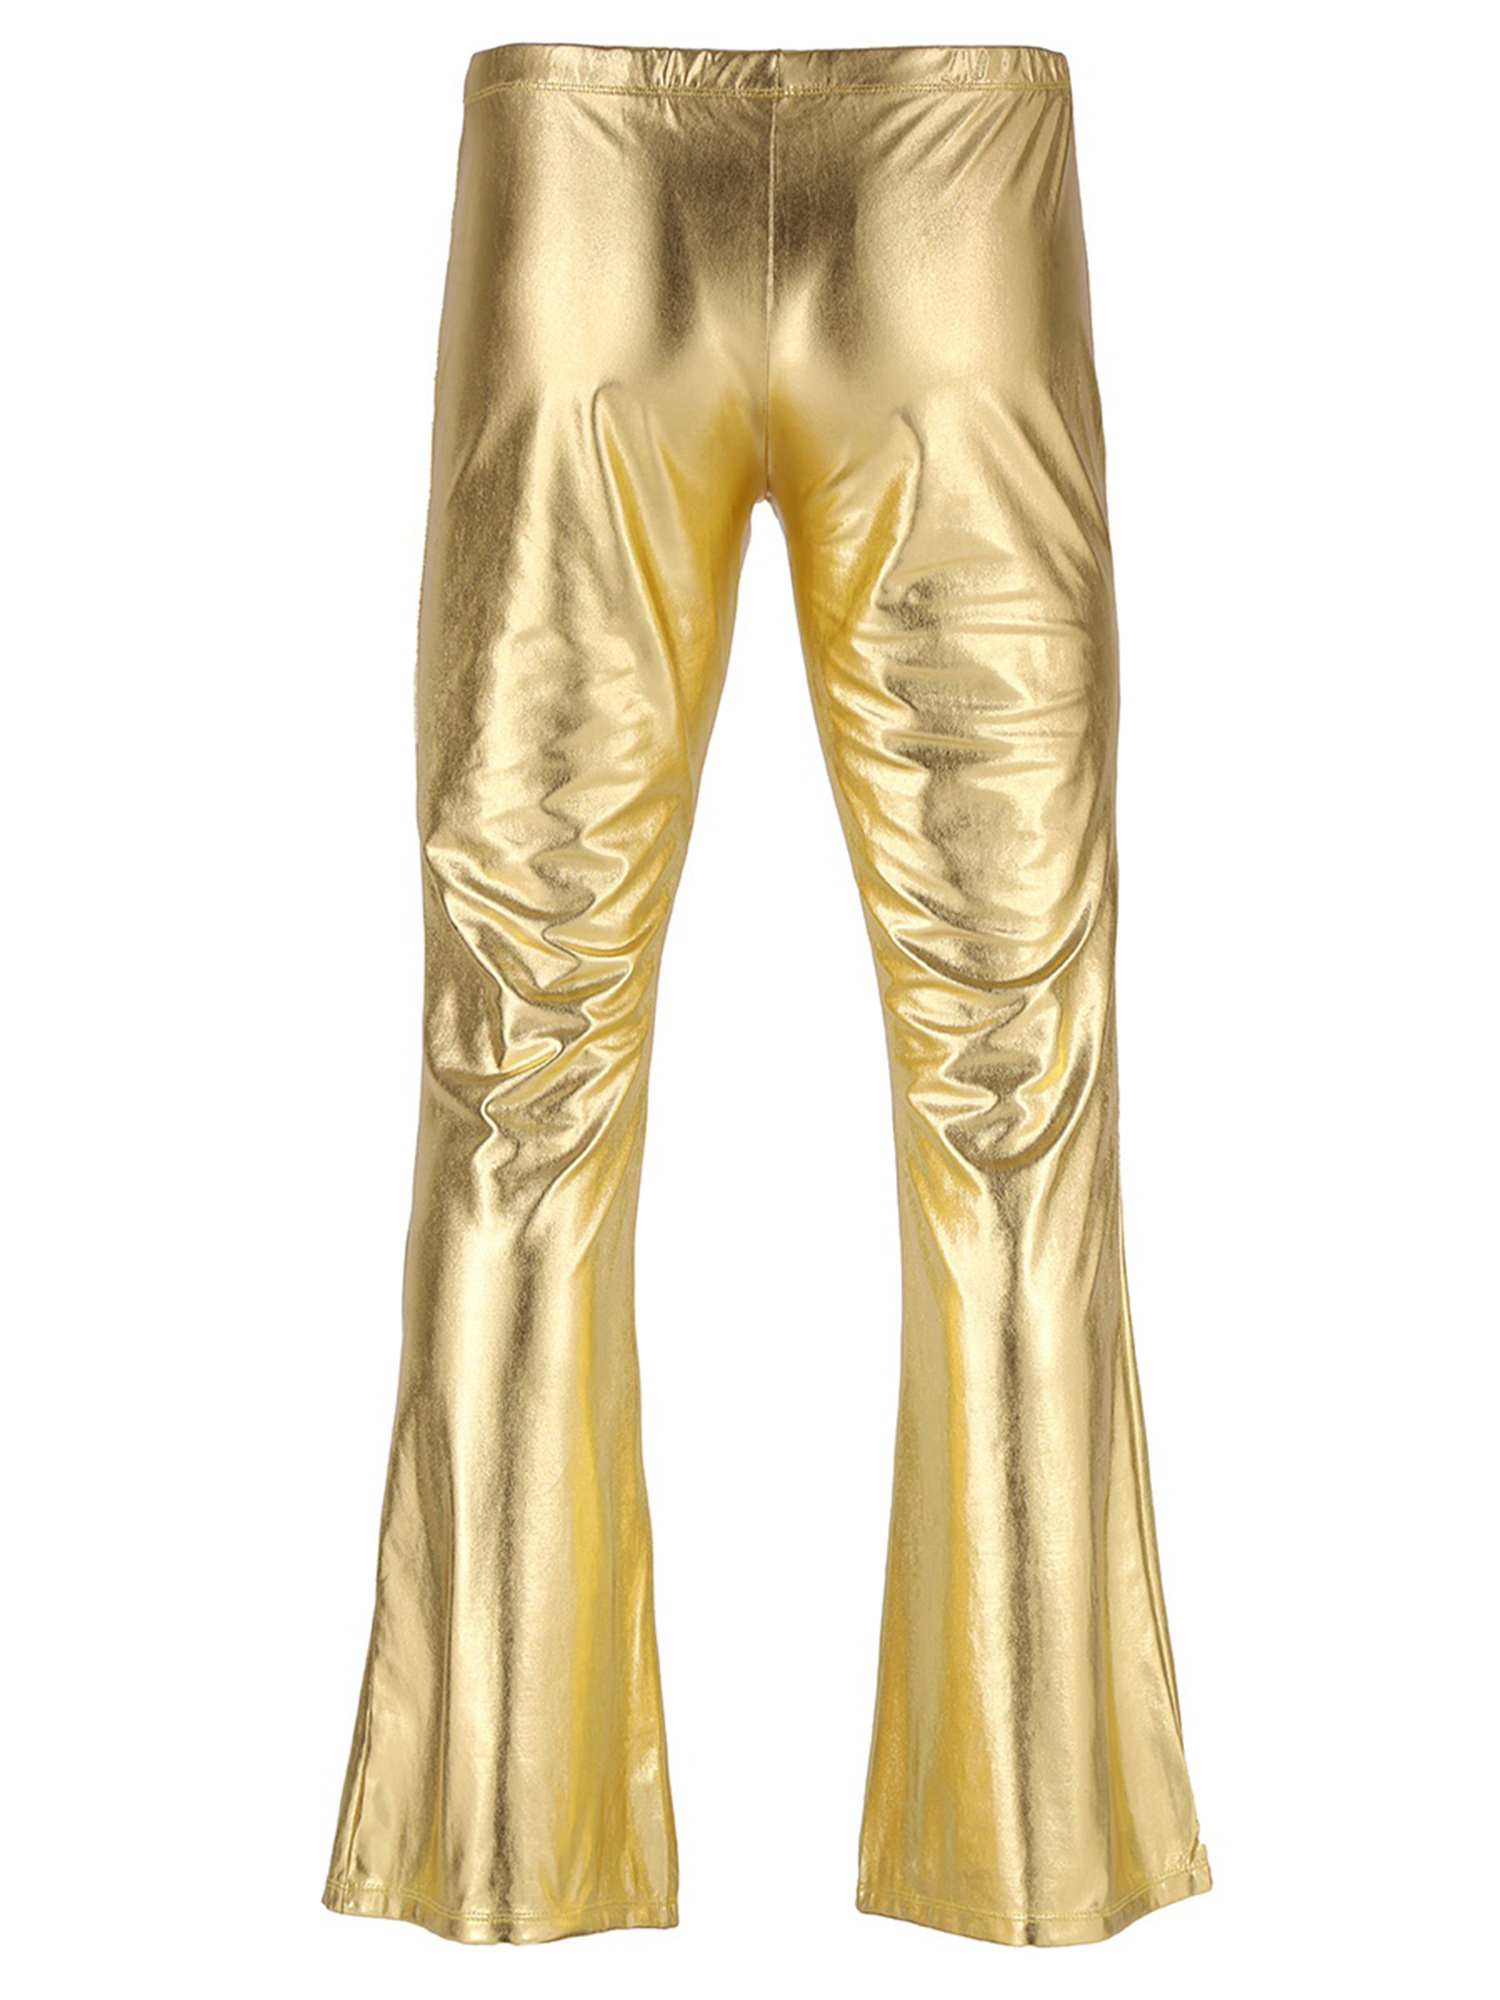 ChicTry Adults Mens Shiny Metallic Disco Pants with Bell Bottom Flared Long Pants Dude Costume Trousers for 70's Theme Parties 40